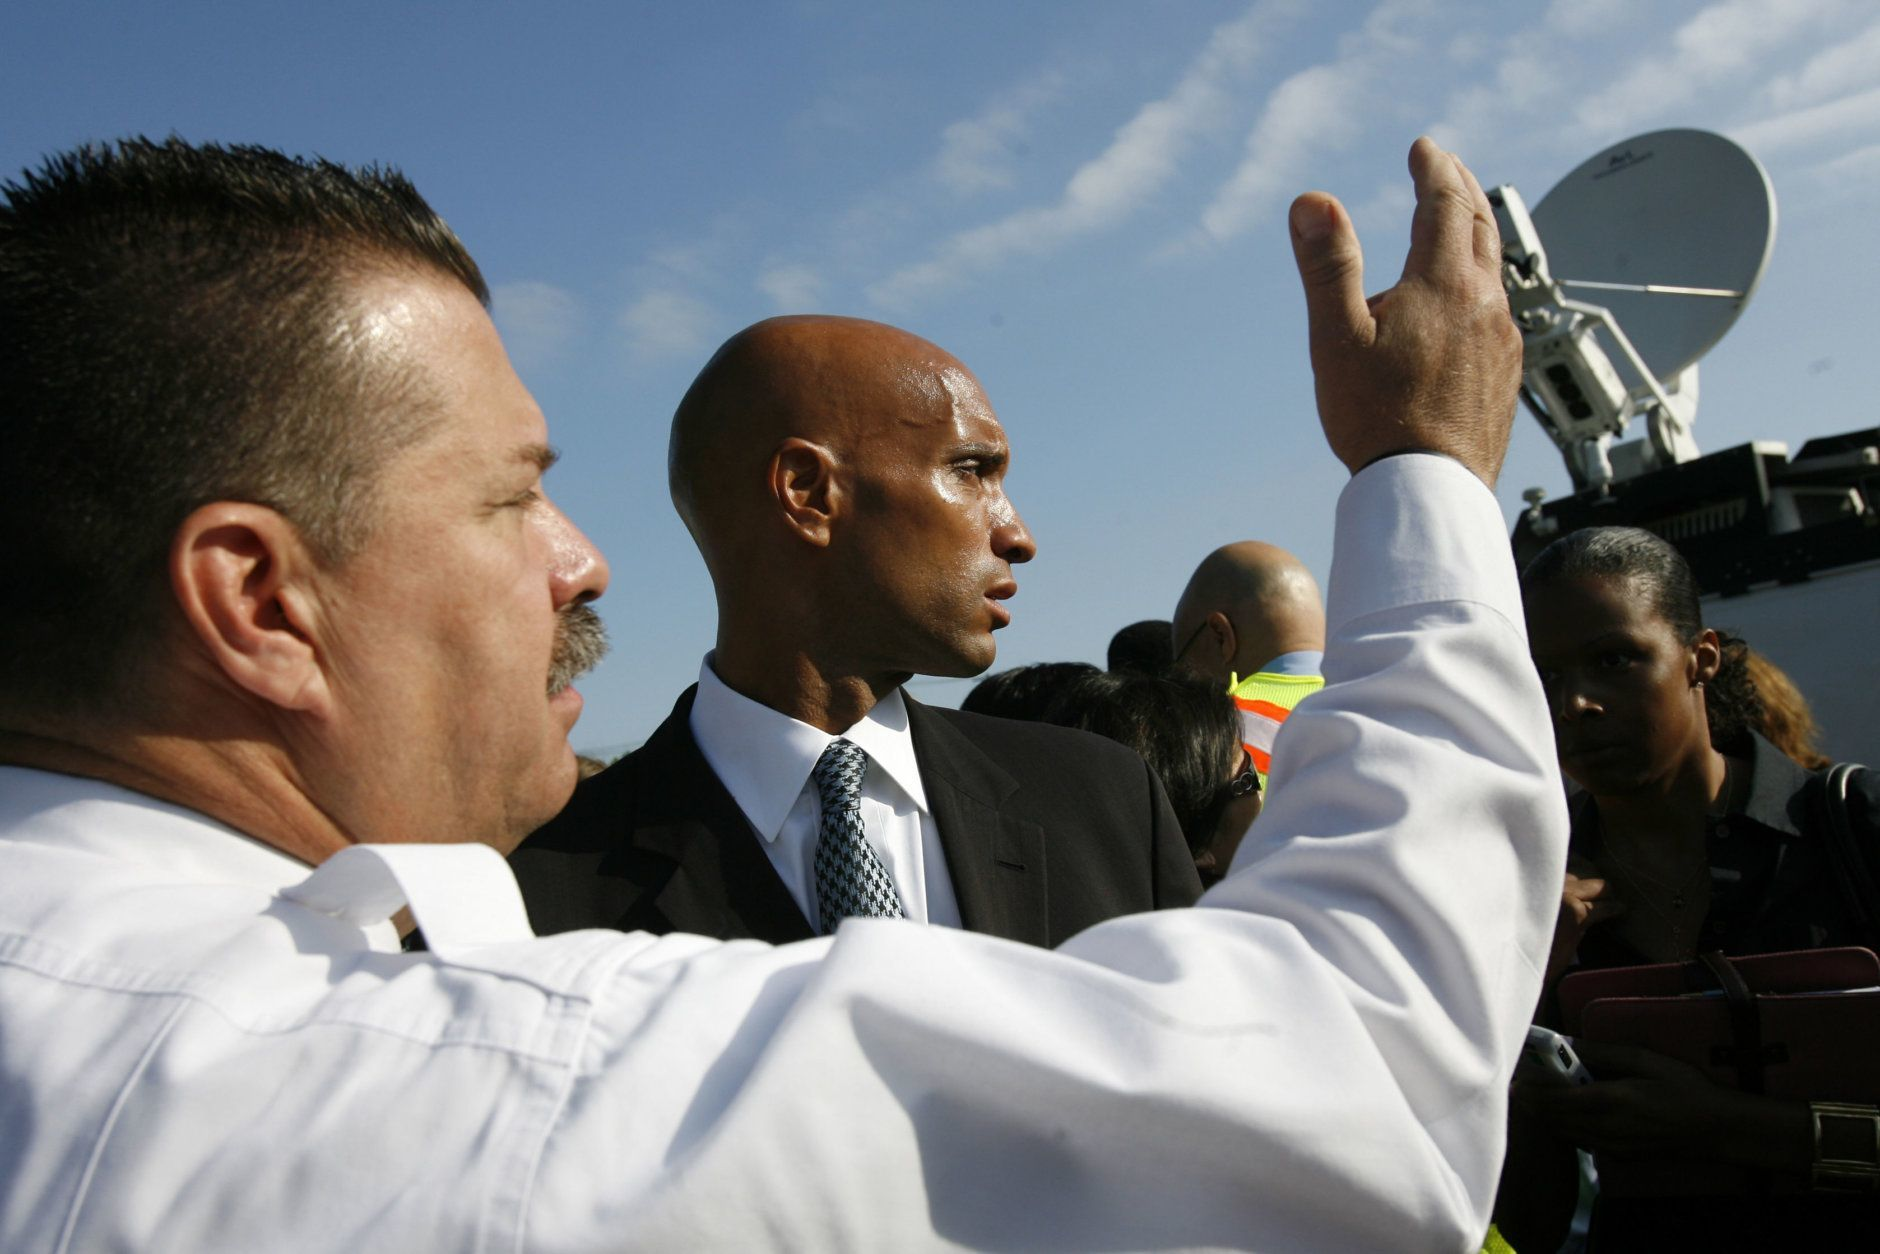 Washington Fire Chief Dennis Rubin, left, and Washington Mayor Adrian Fenty are seen near the site in Washington, Tuesday, June 23, 2009, where two metro trains collided Monday. (AP Photo/Jacquelyn Martin)